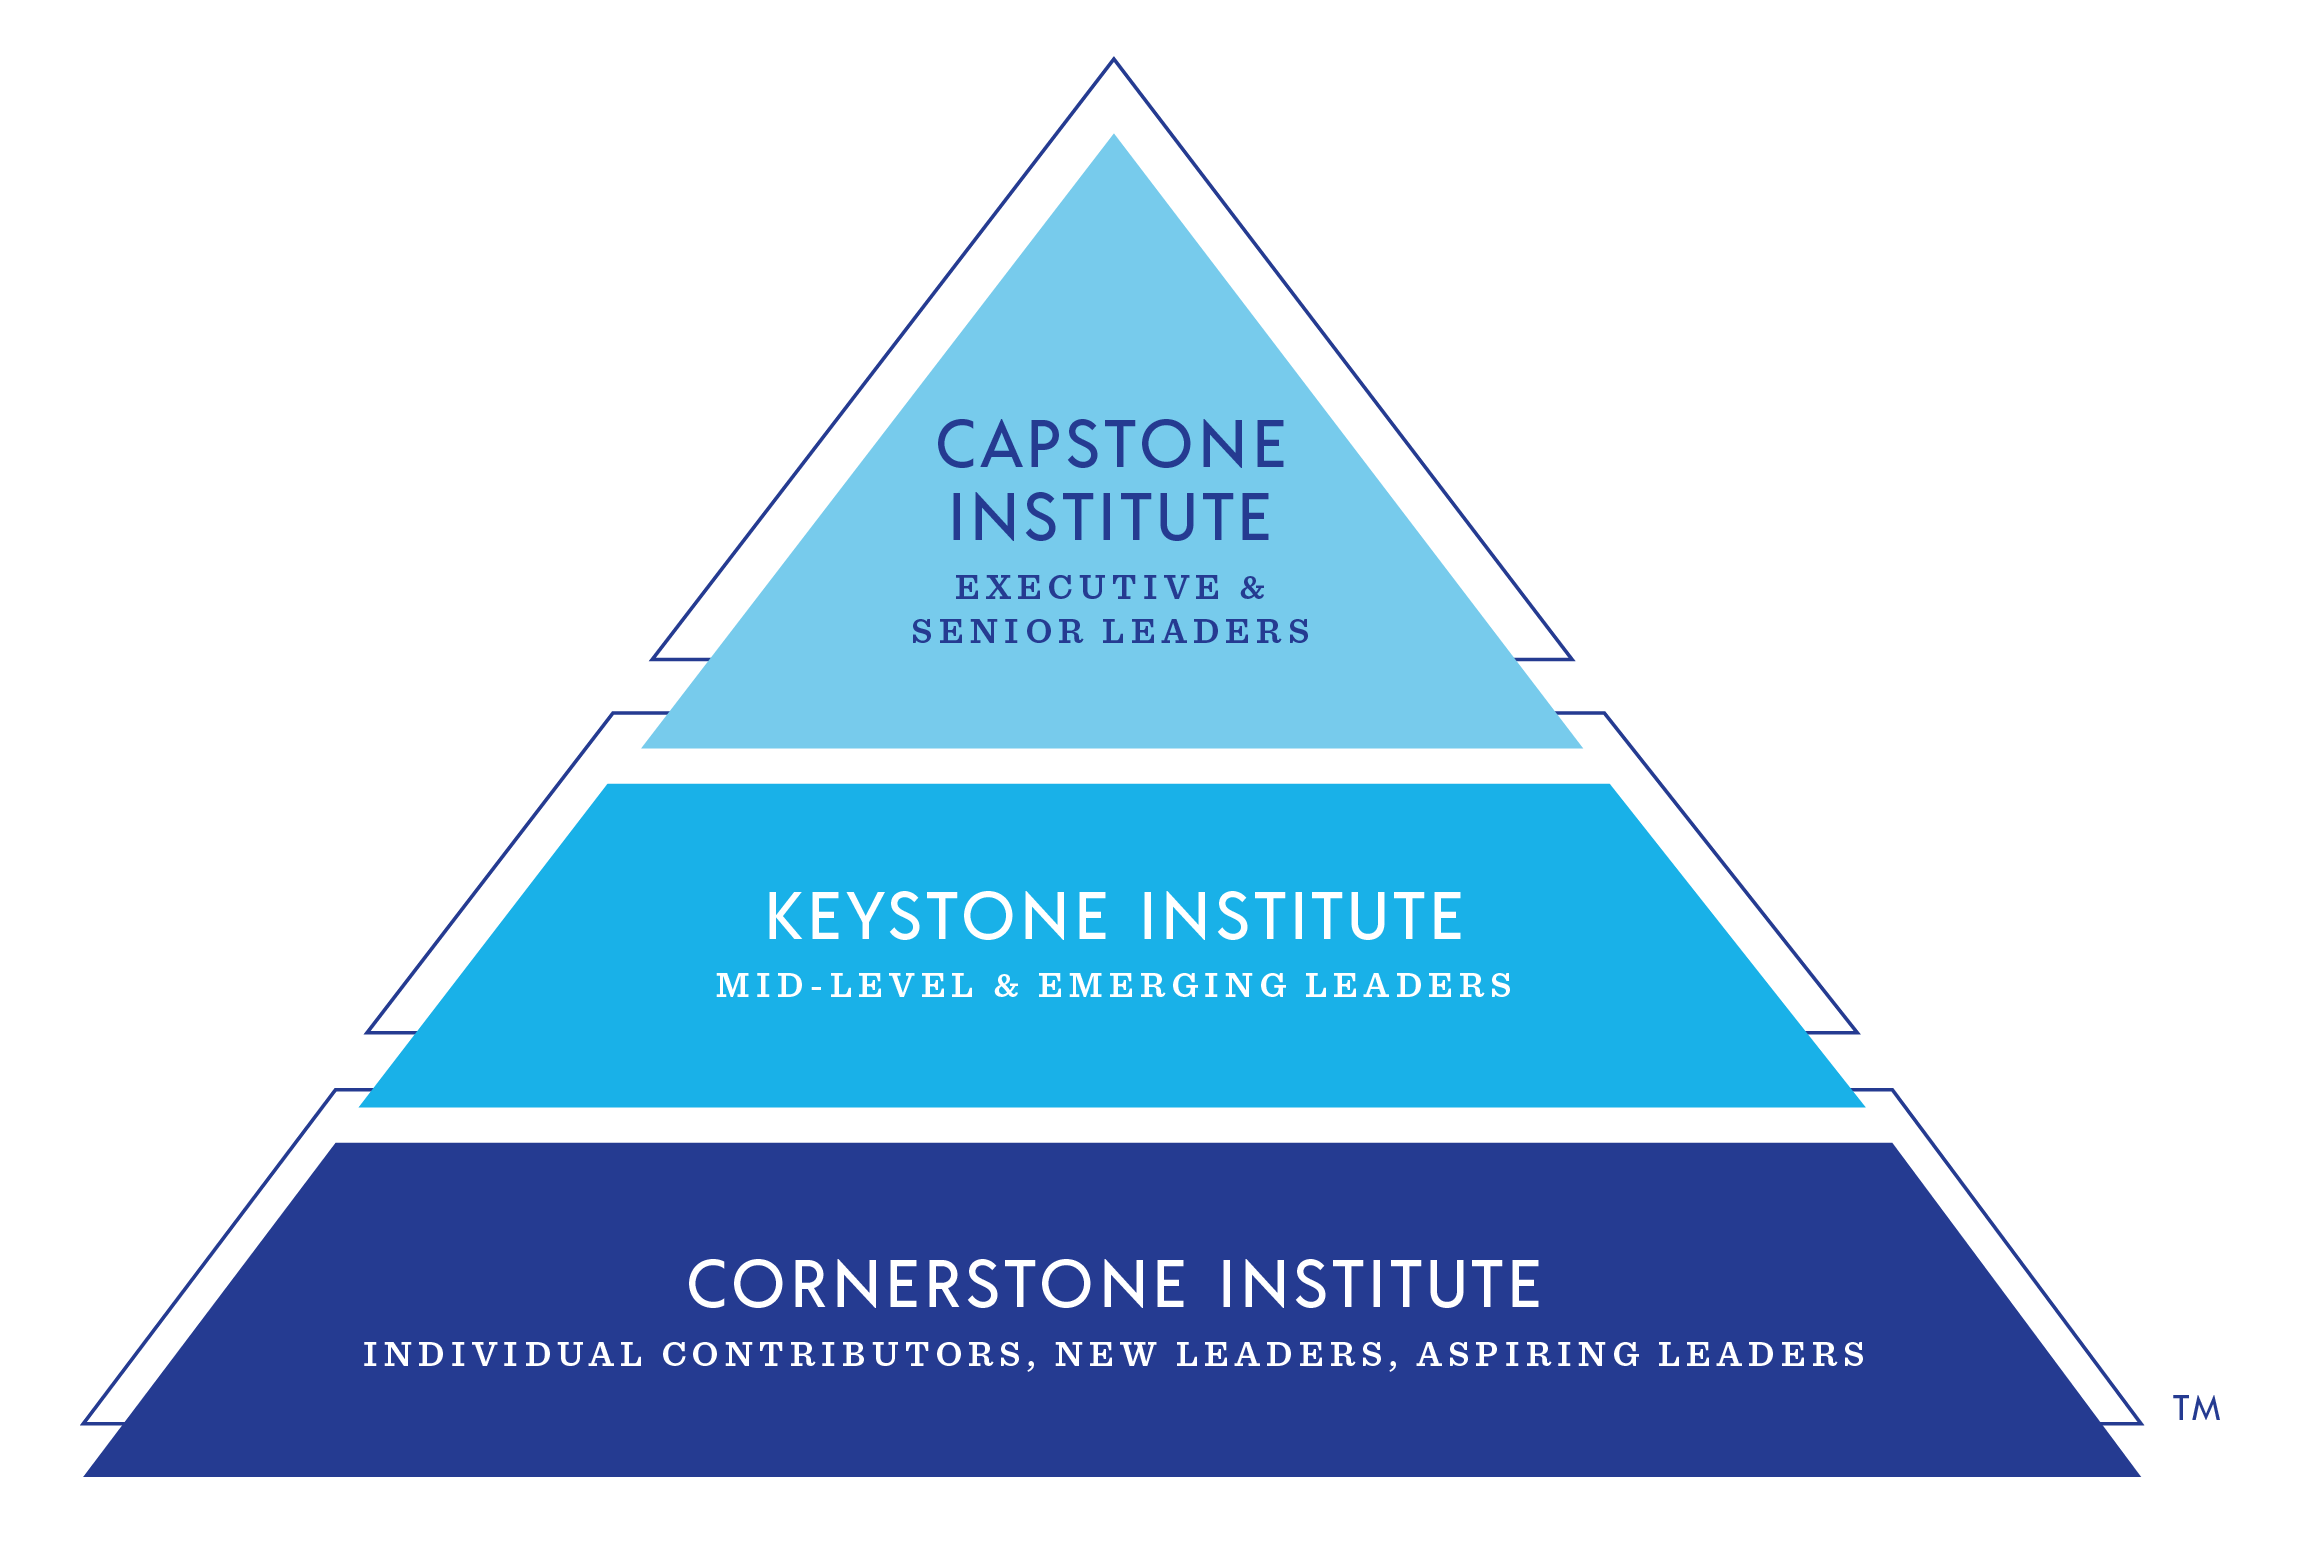 capstone-pyramid@2x.png